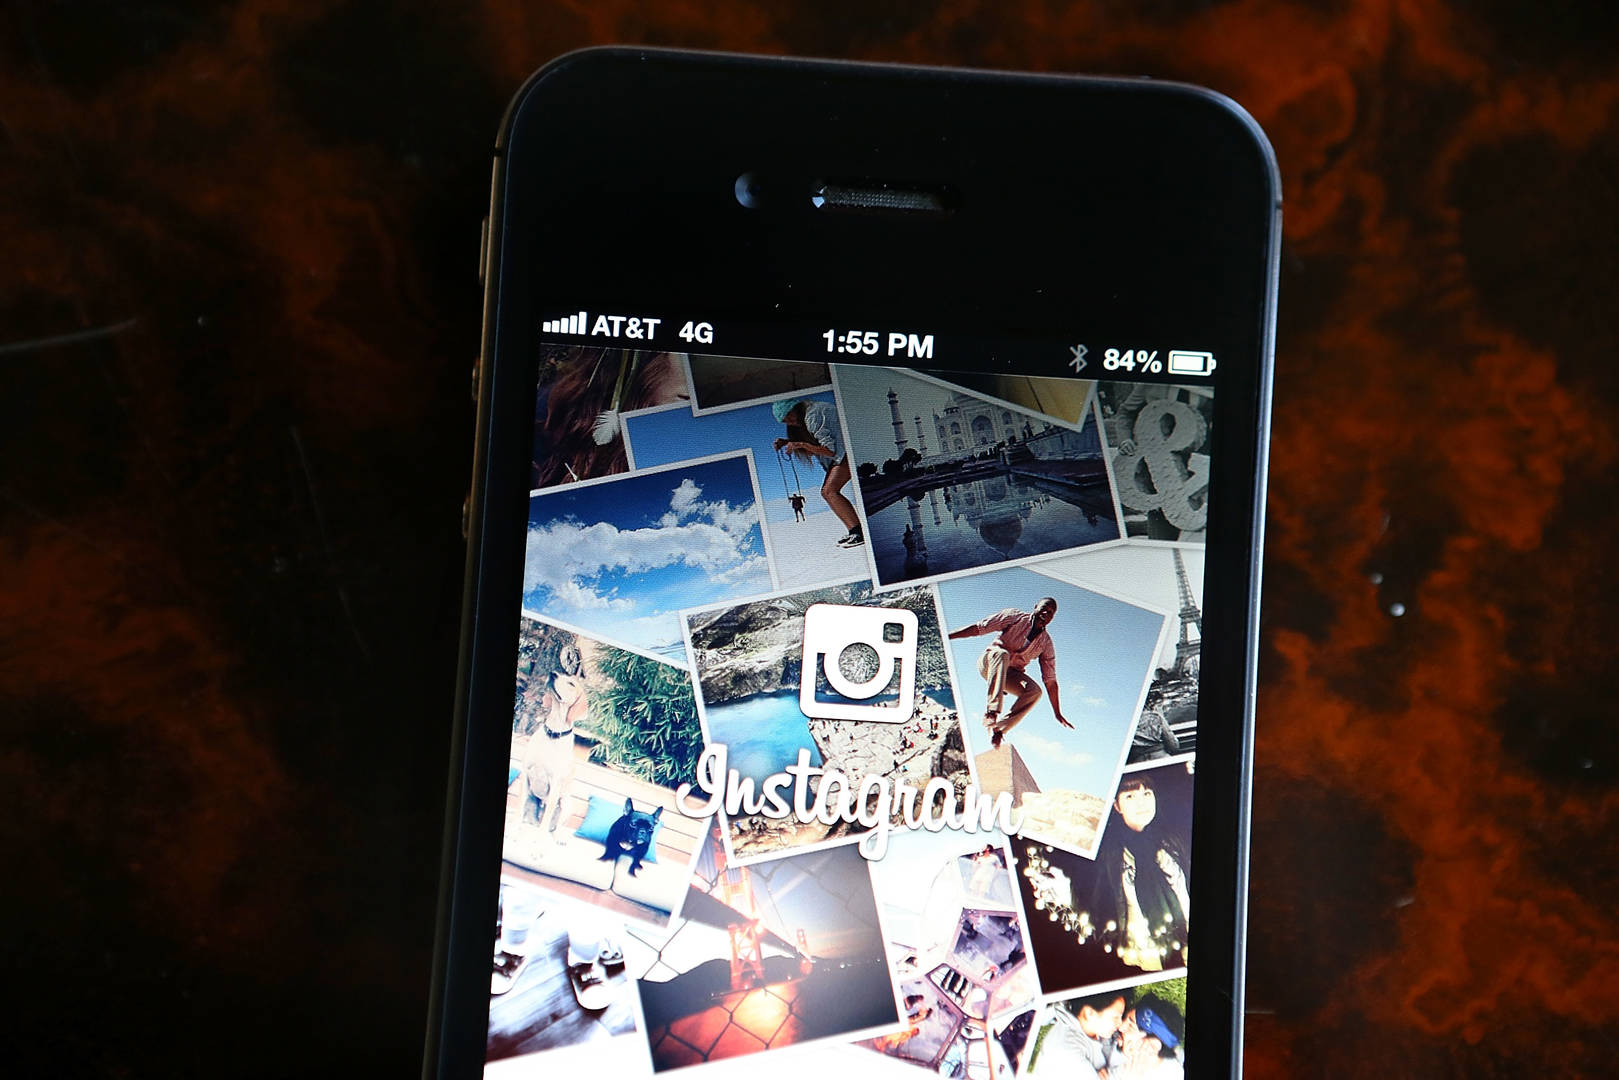 Instagram to test hiding users' likes starting next week